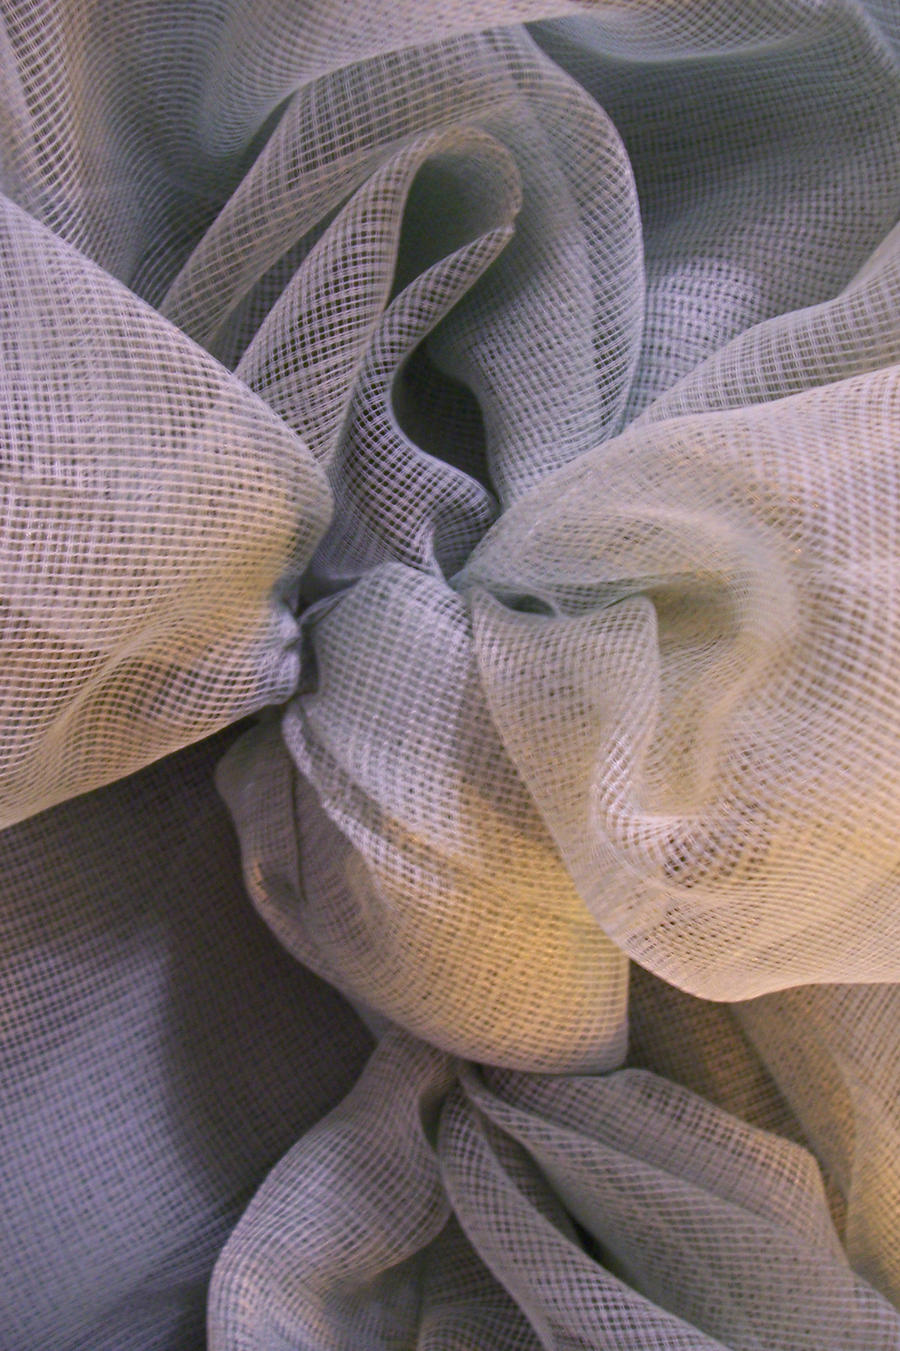 All netted up in Knot - fabric